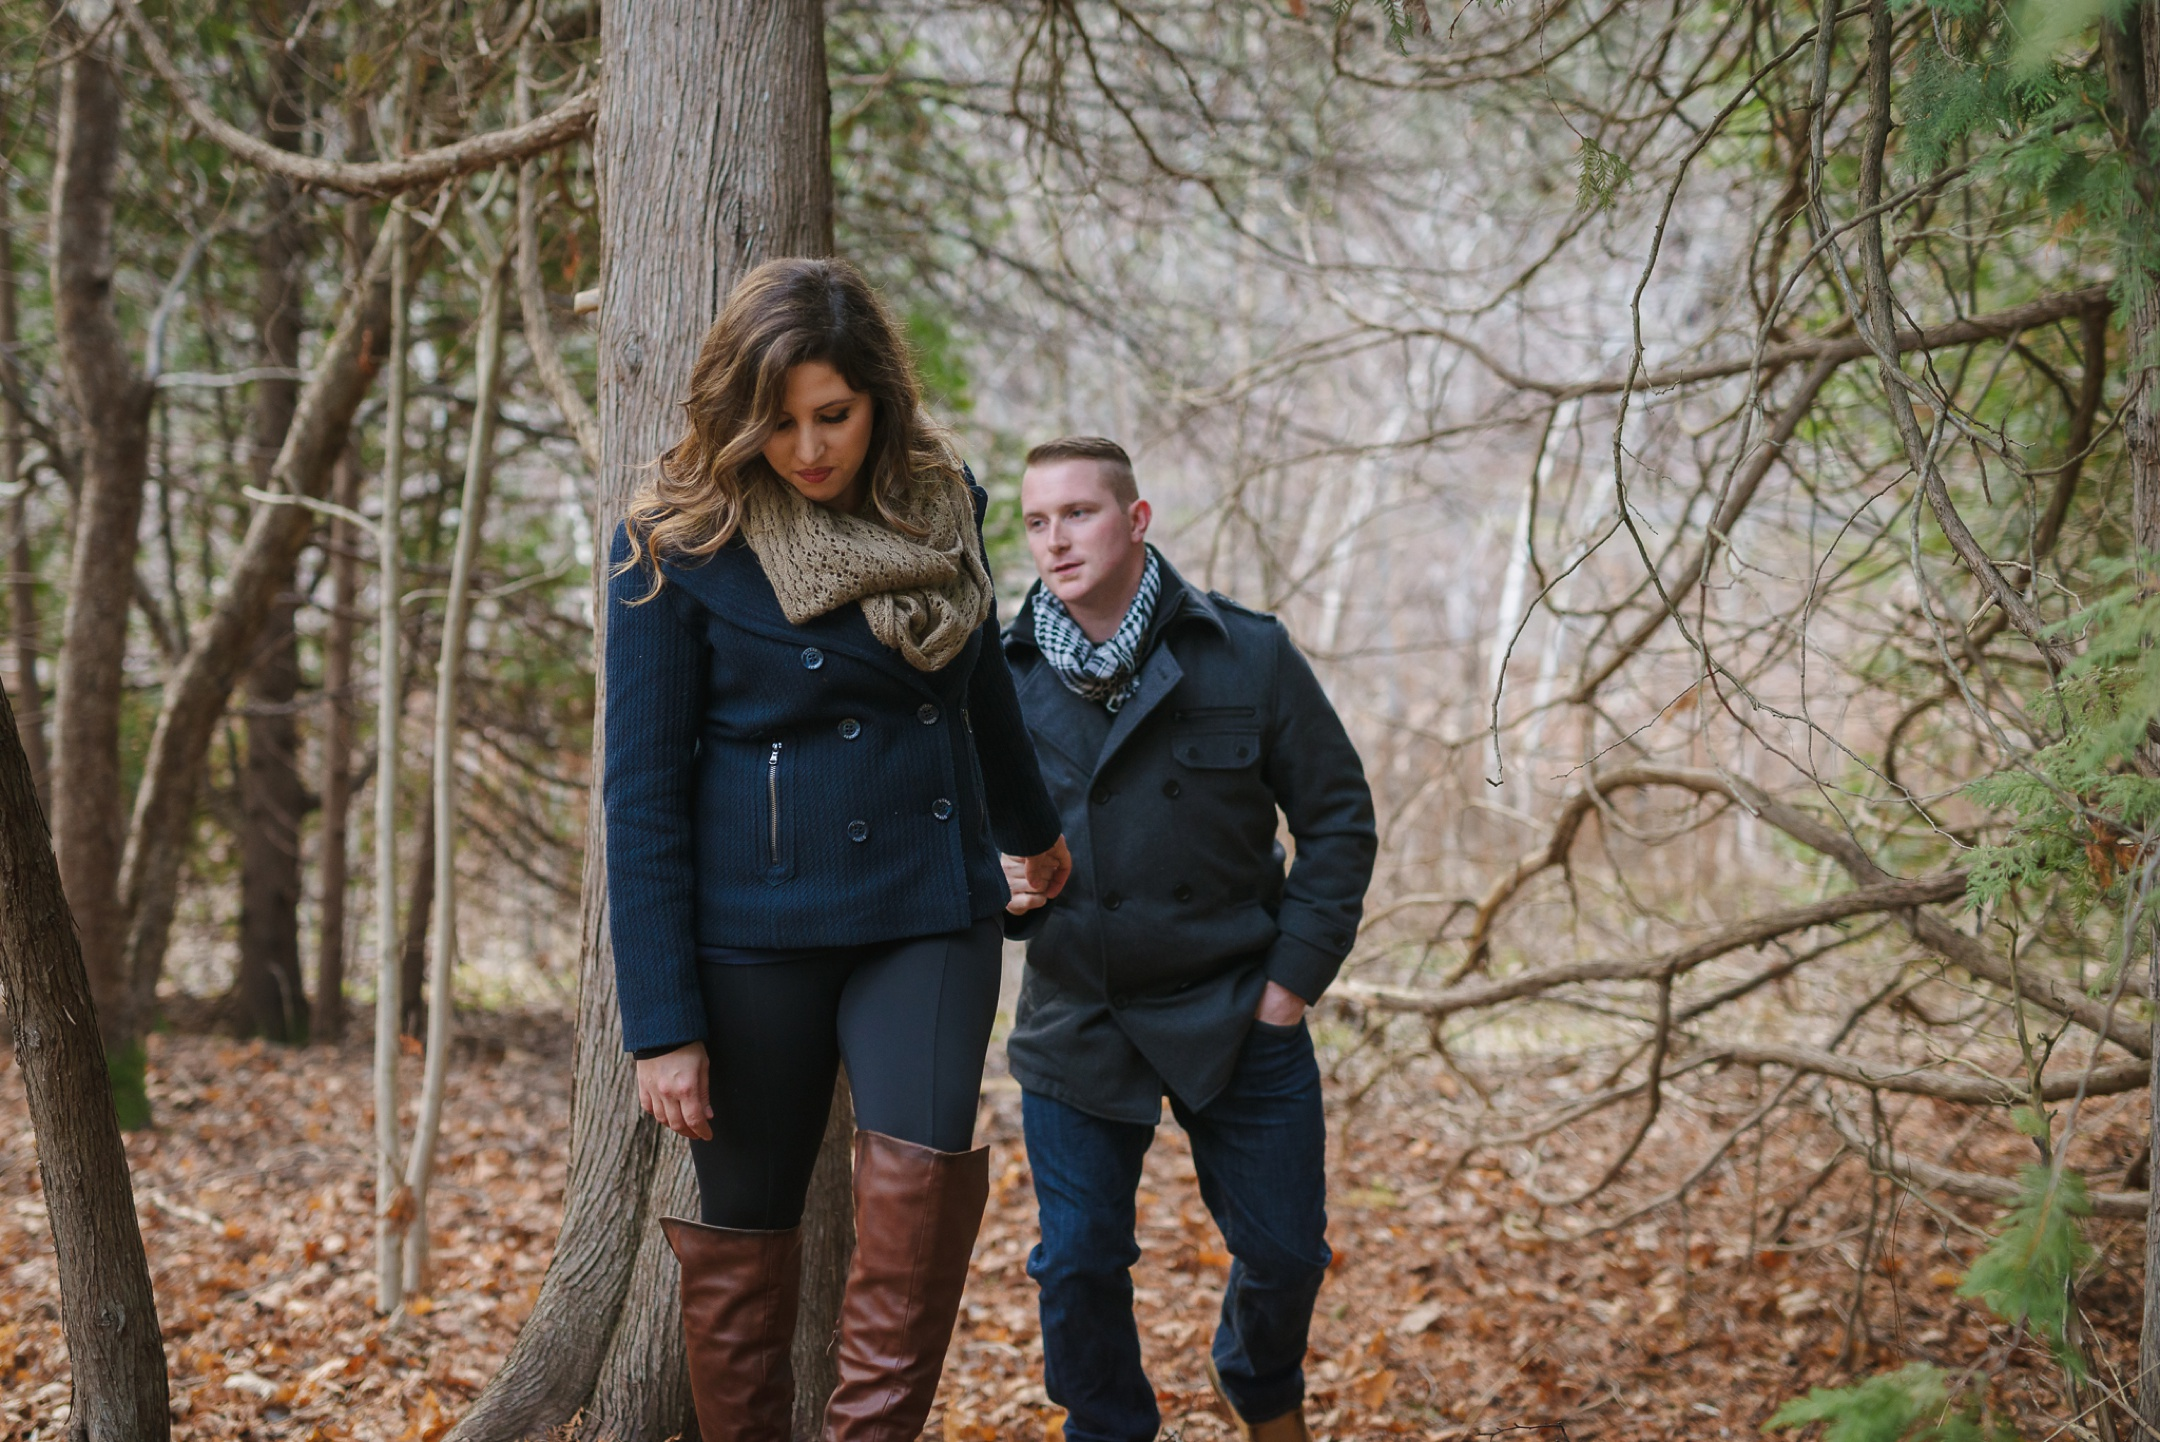 Durham Region, Whitby Engagement Session in the woods, couple walking together